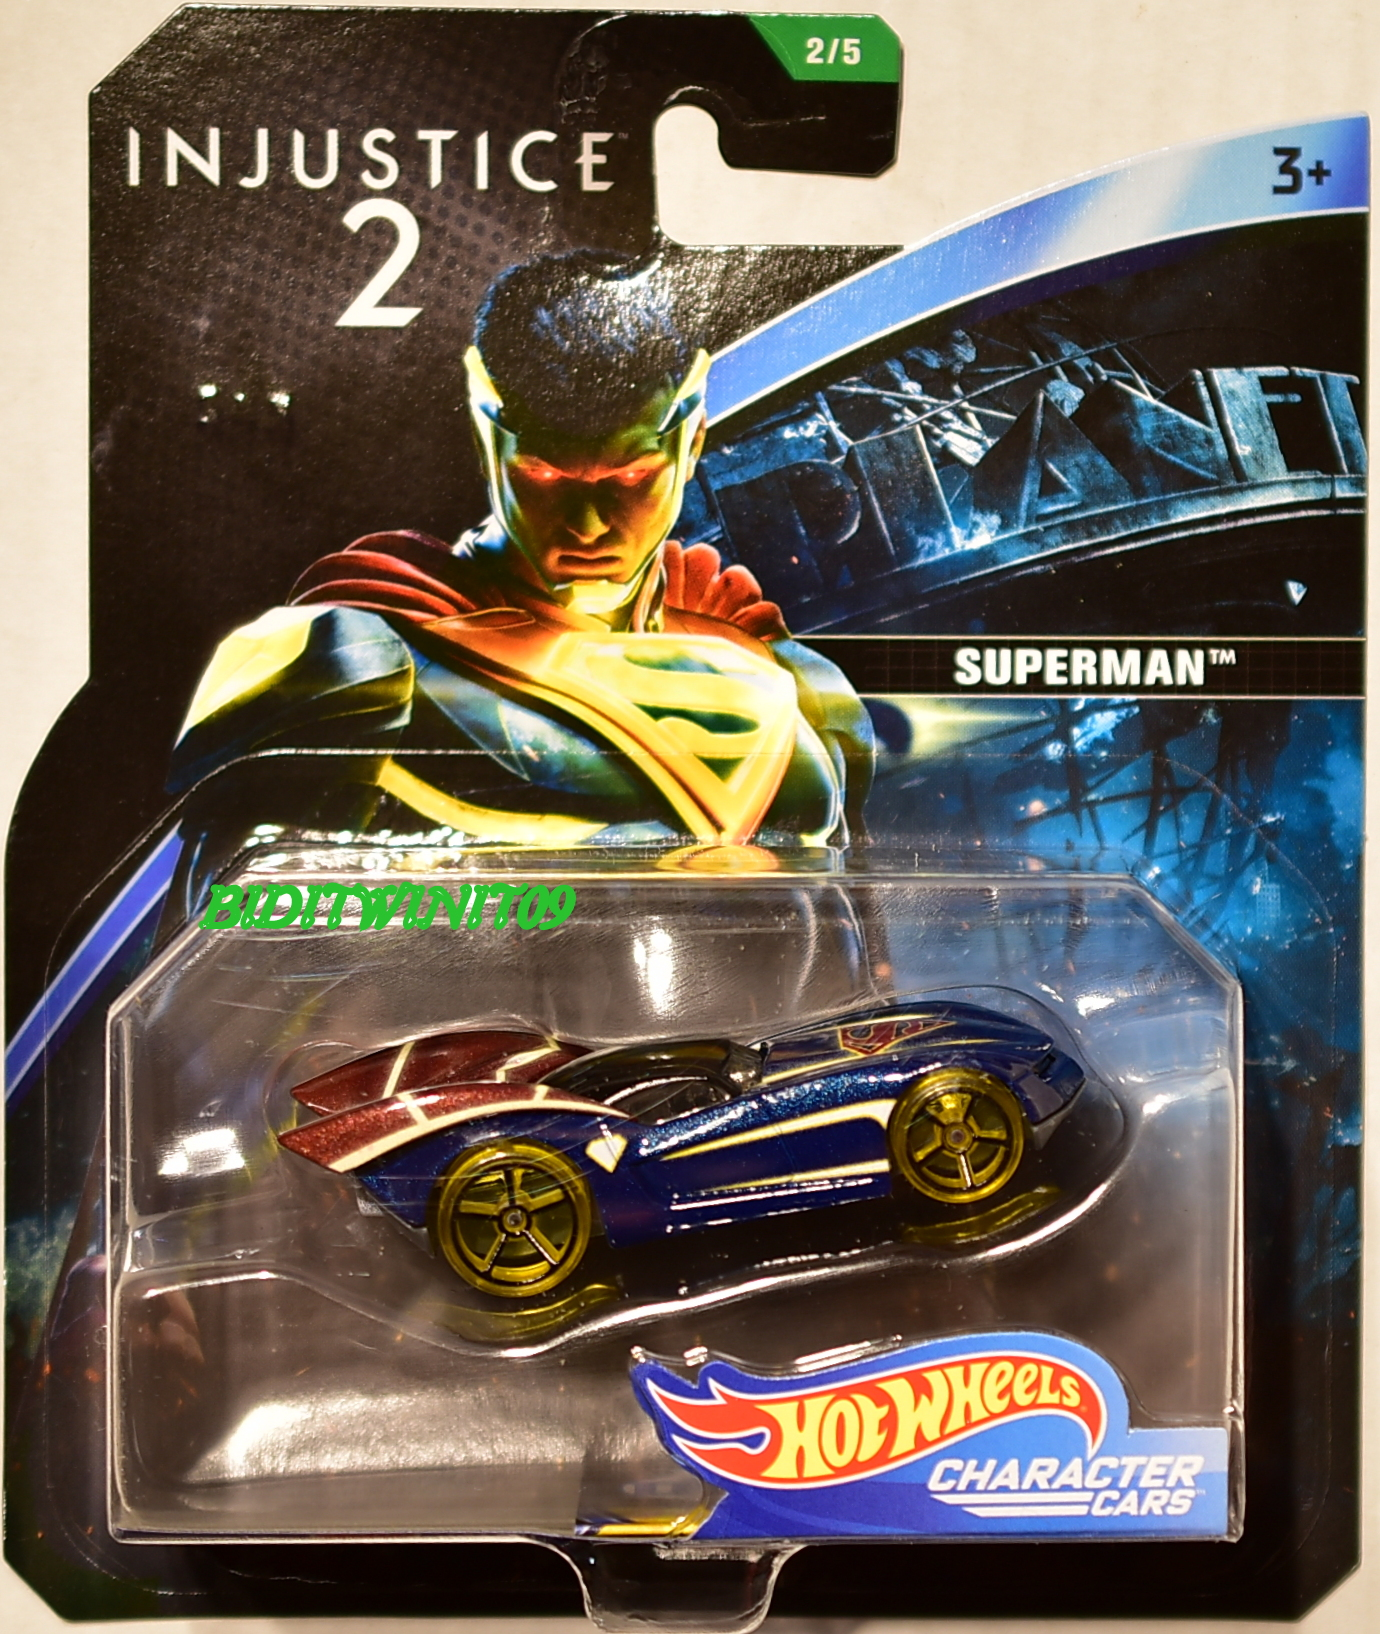 hot wheels 2018 dc comics injustice 2 super man character cars 0007092 biditwinit09. Black Bedroom Furniture Sets. Home Design Ideas